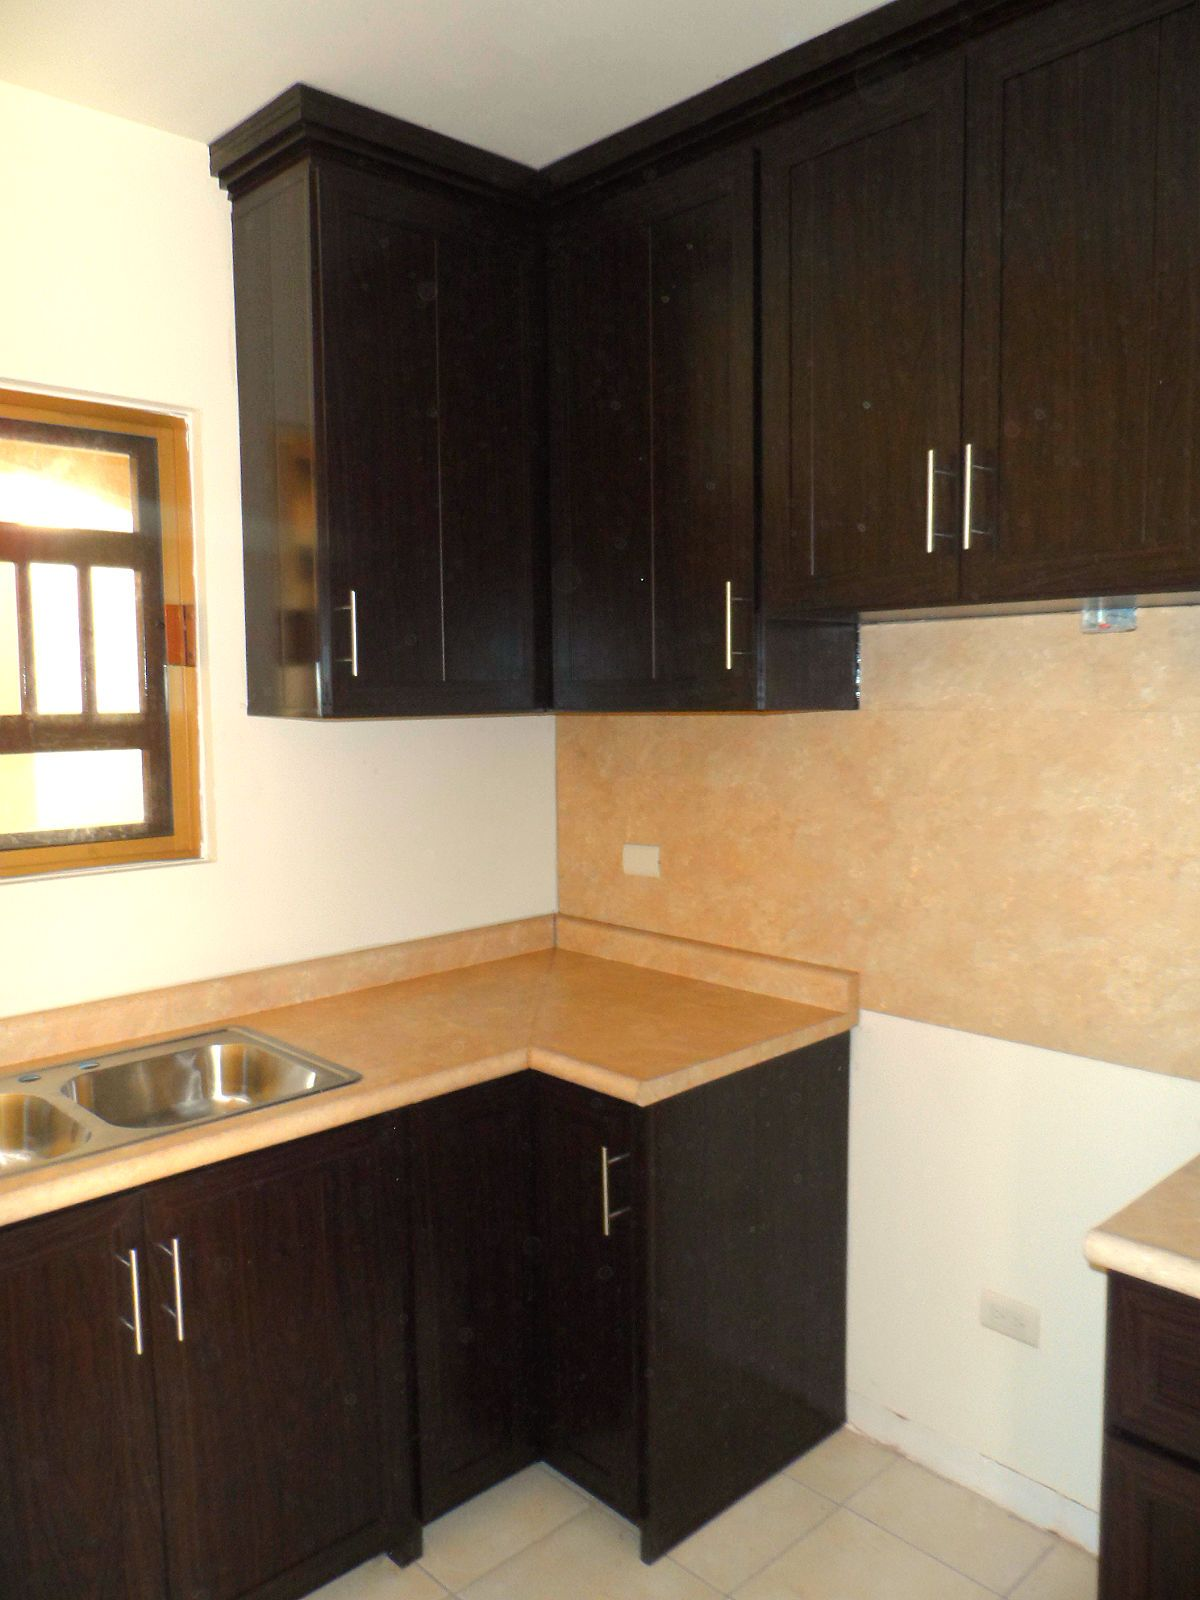 Rigid Plastic Kitchen Cabinets Are The Solution For Water Leaks And High Costs Of Ma Plastic Kitchen Cabinets Used Kitchen Cabinets Installing Kitchen Cabinets